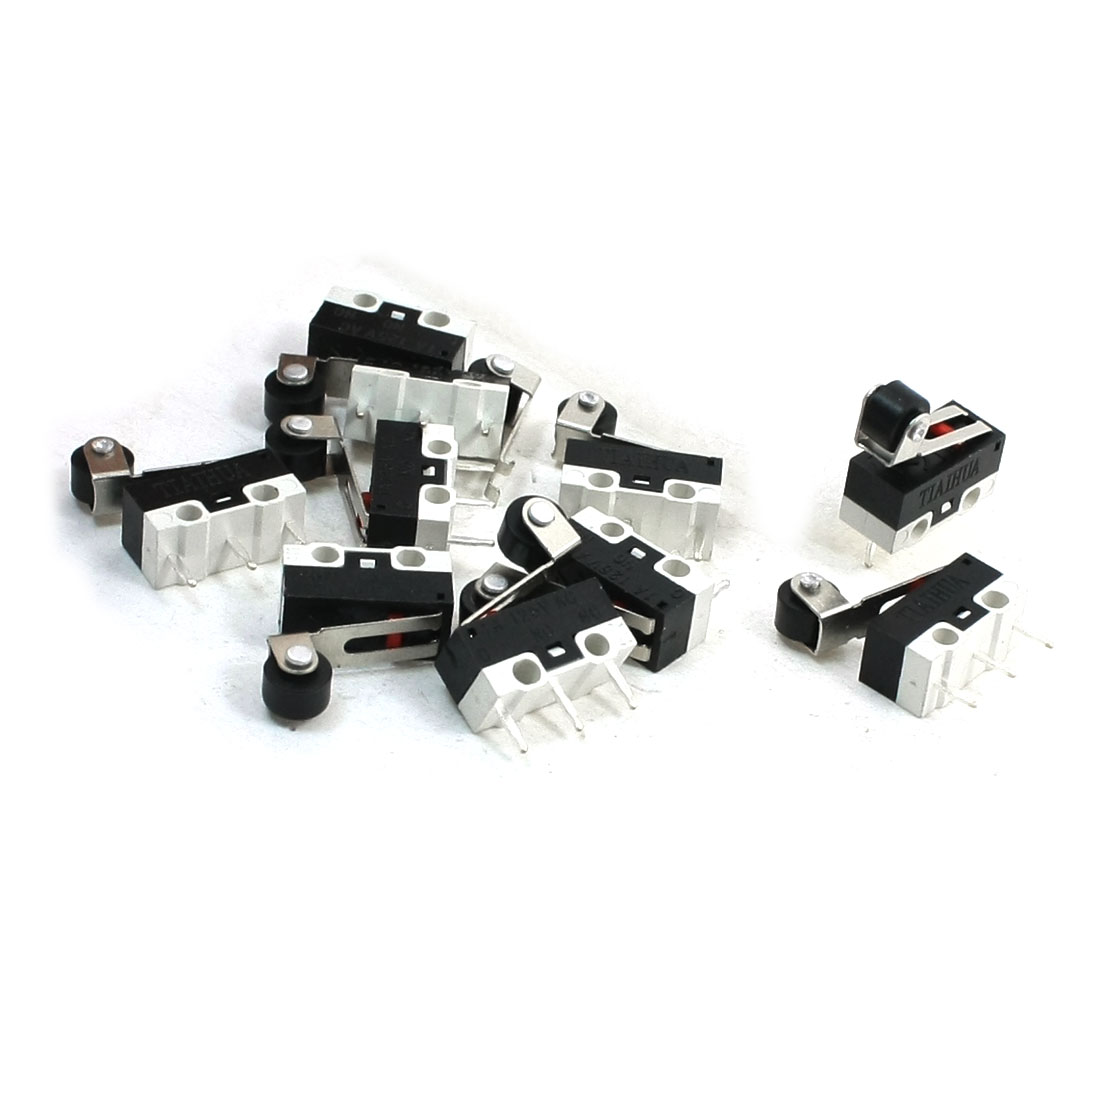 10Pcs-1A-125VAC-NO-NC-Momentary-Roller-Hinge-Lever-SPDT-Micro-Switches